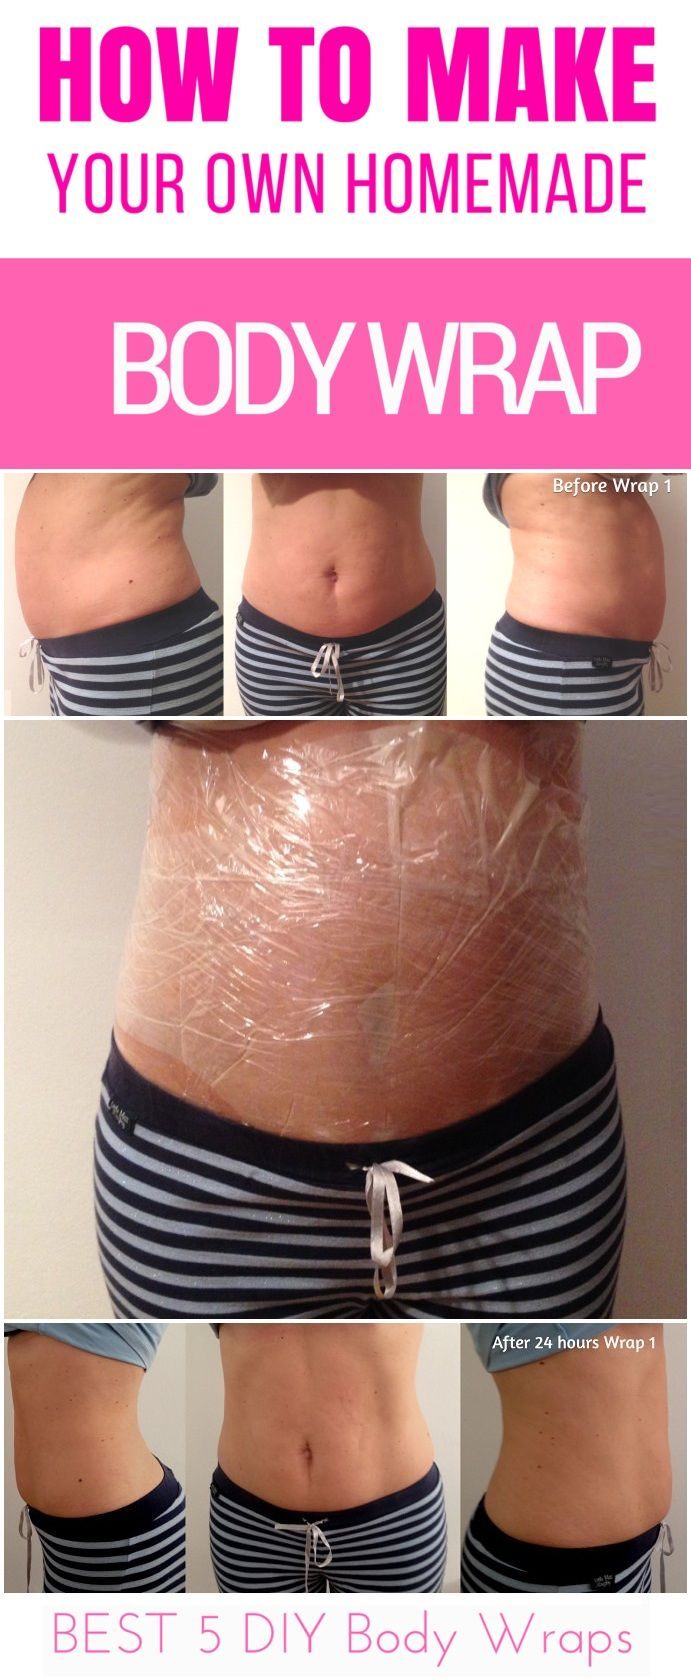 Diy Body Wrap For Weight Loss Detox And Cellulite Treatment